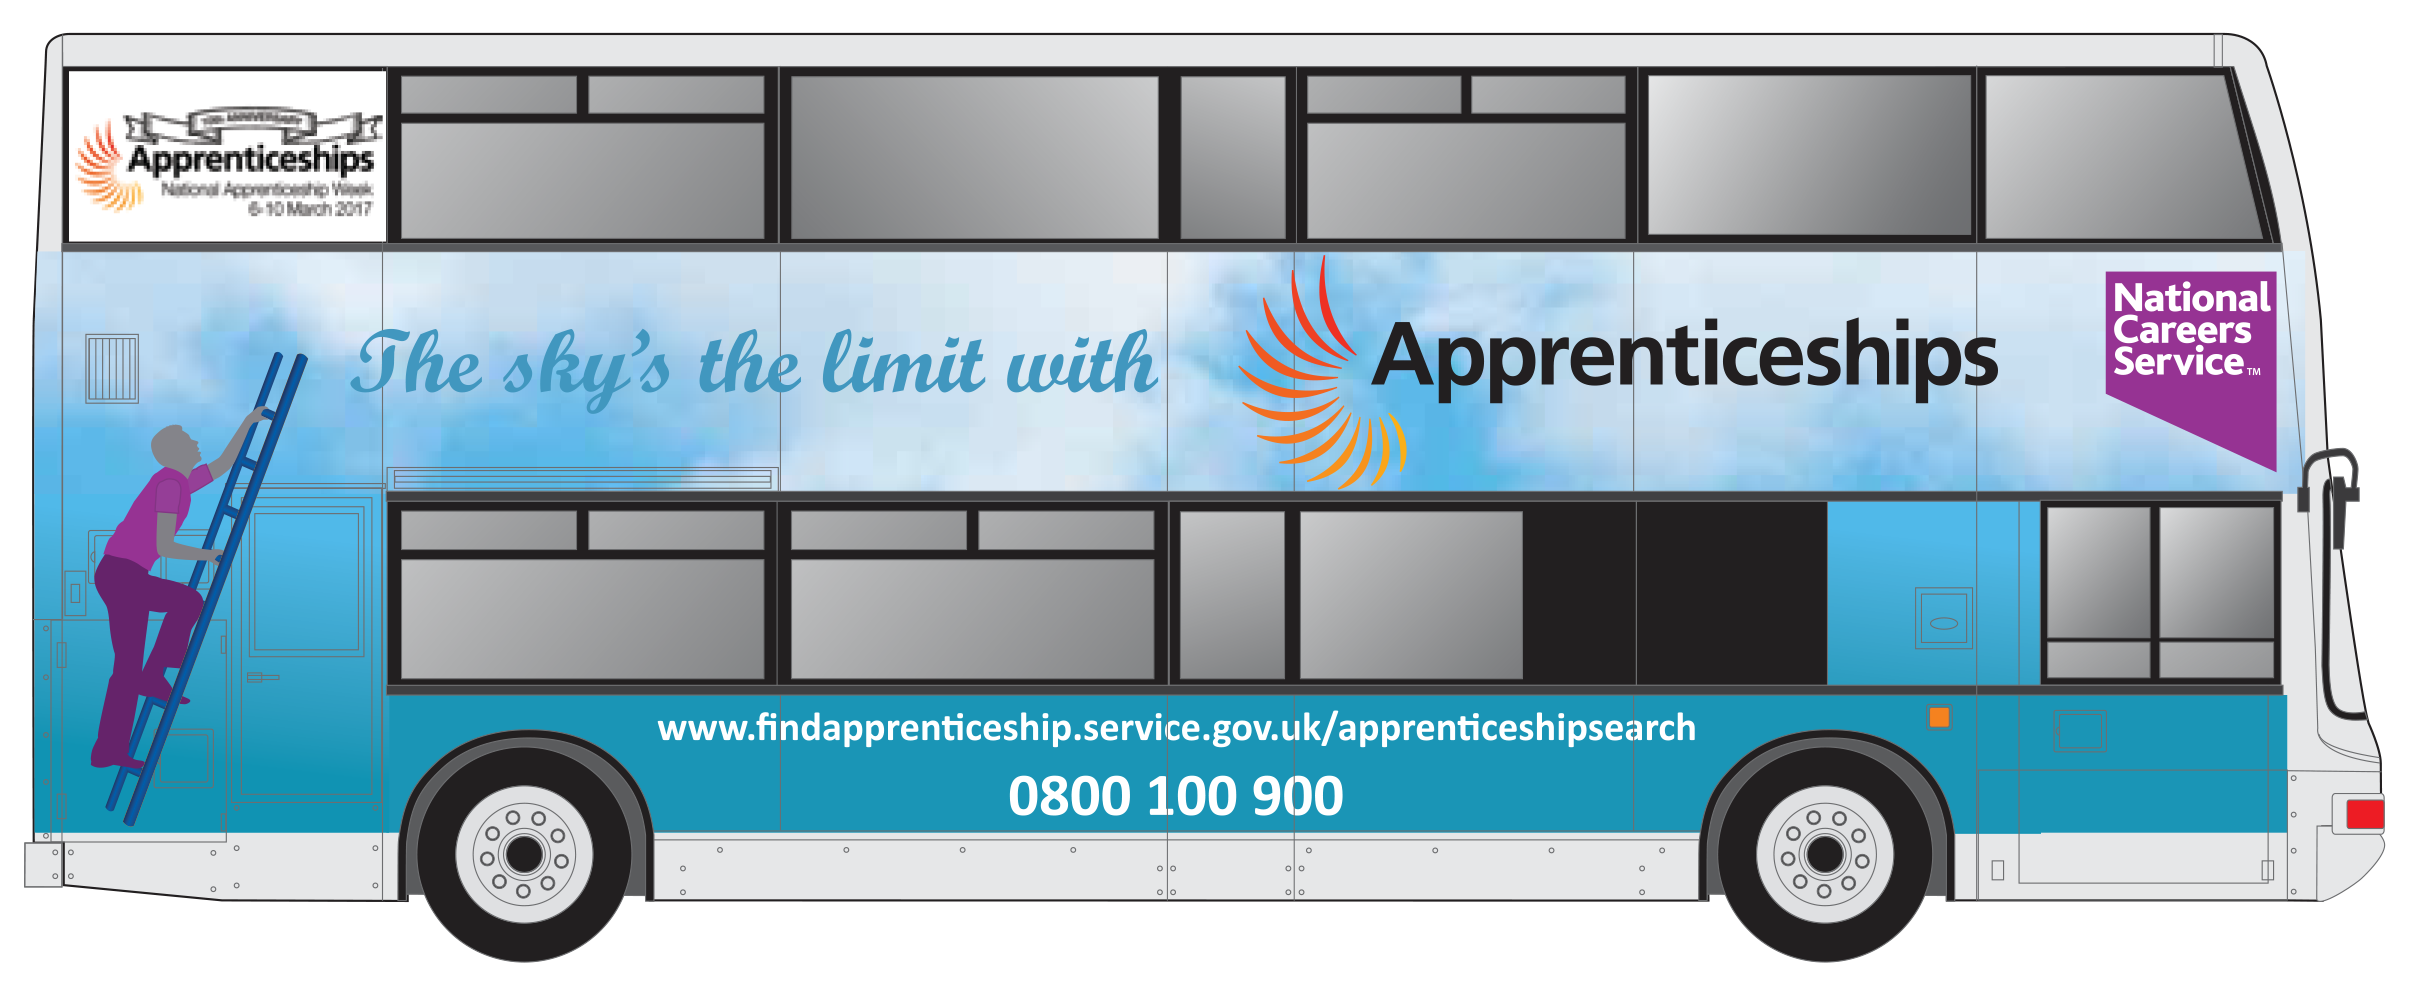 apprenticeship bus roadshow comes to plymouth the plymouth daily